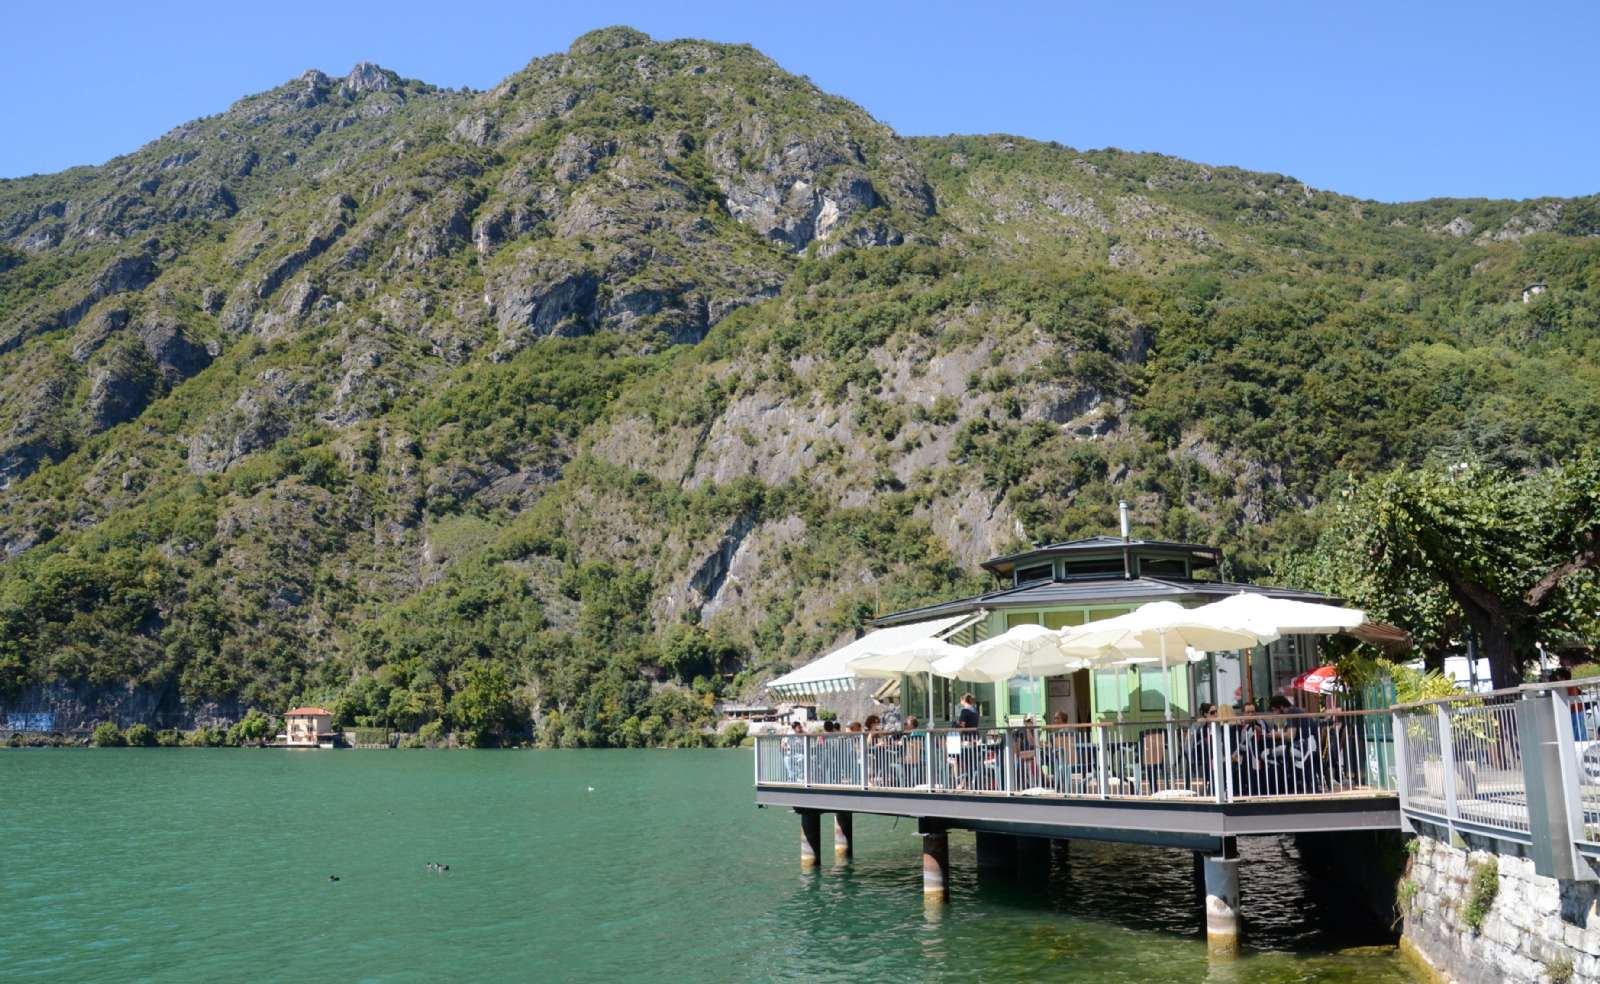 Café et restaurant le long du lac